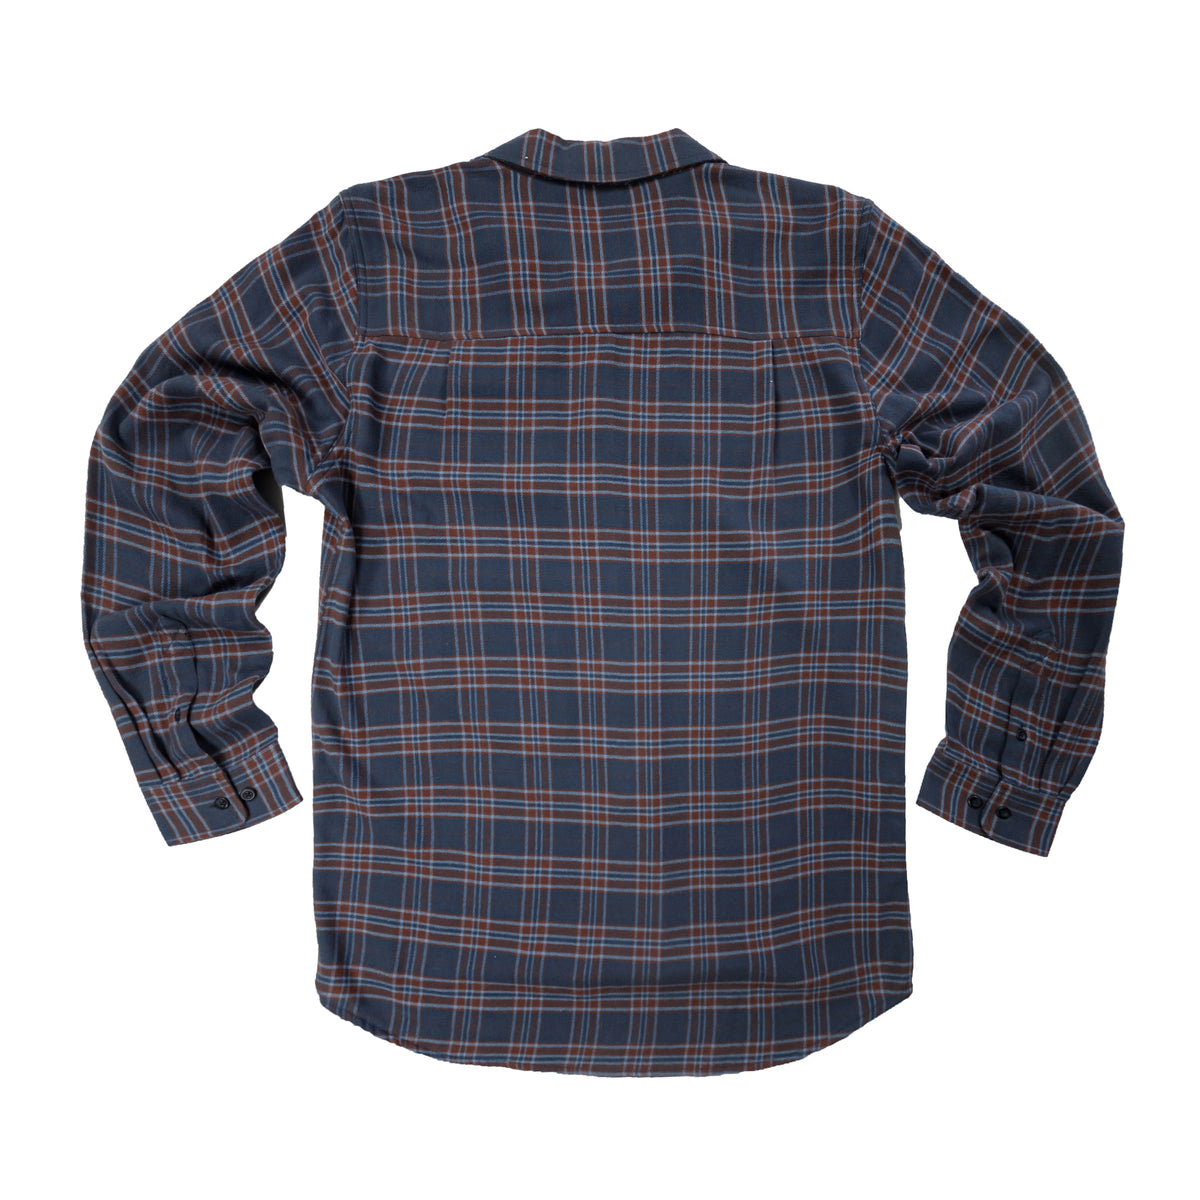 Masonboro Flannel - Wine Plaid